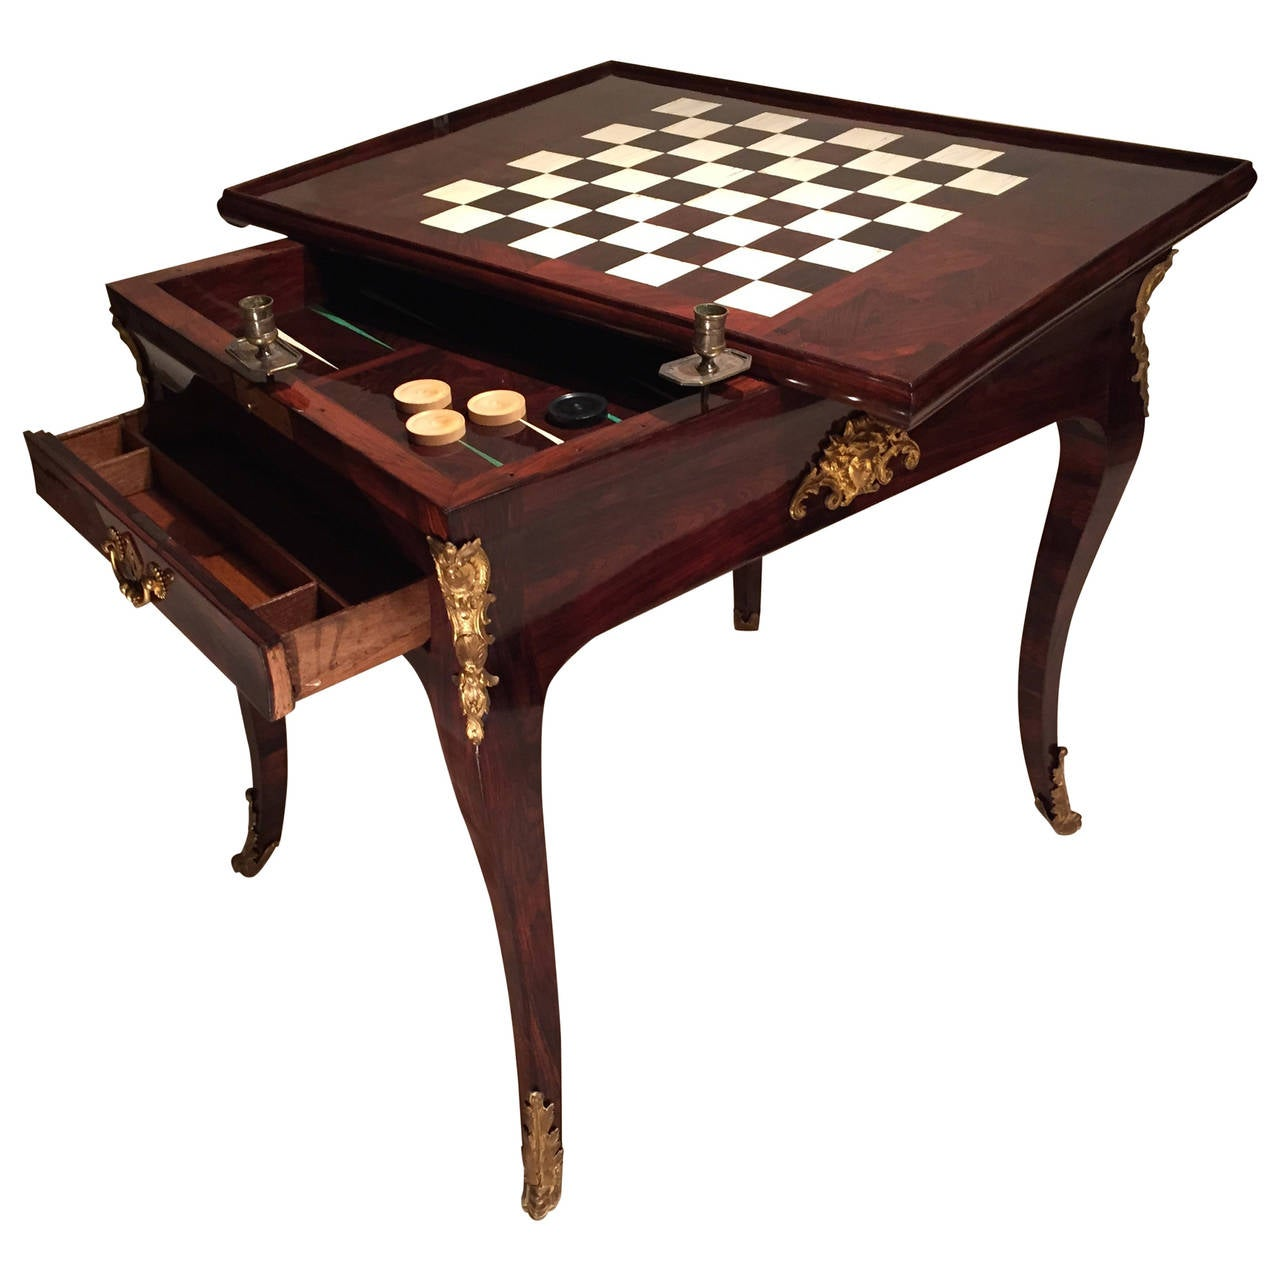 italian walnut games table at 1stdibs bokep ter